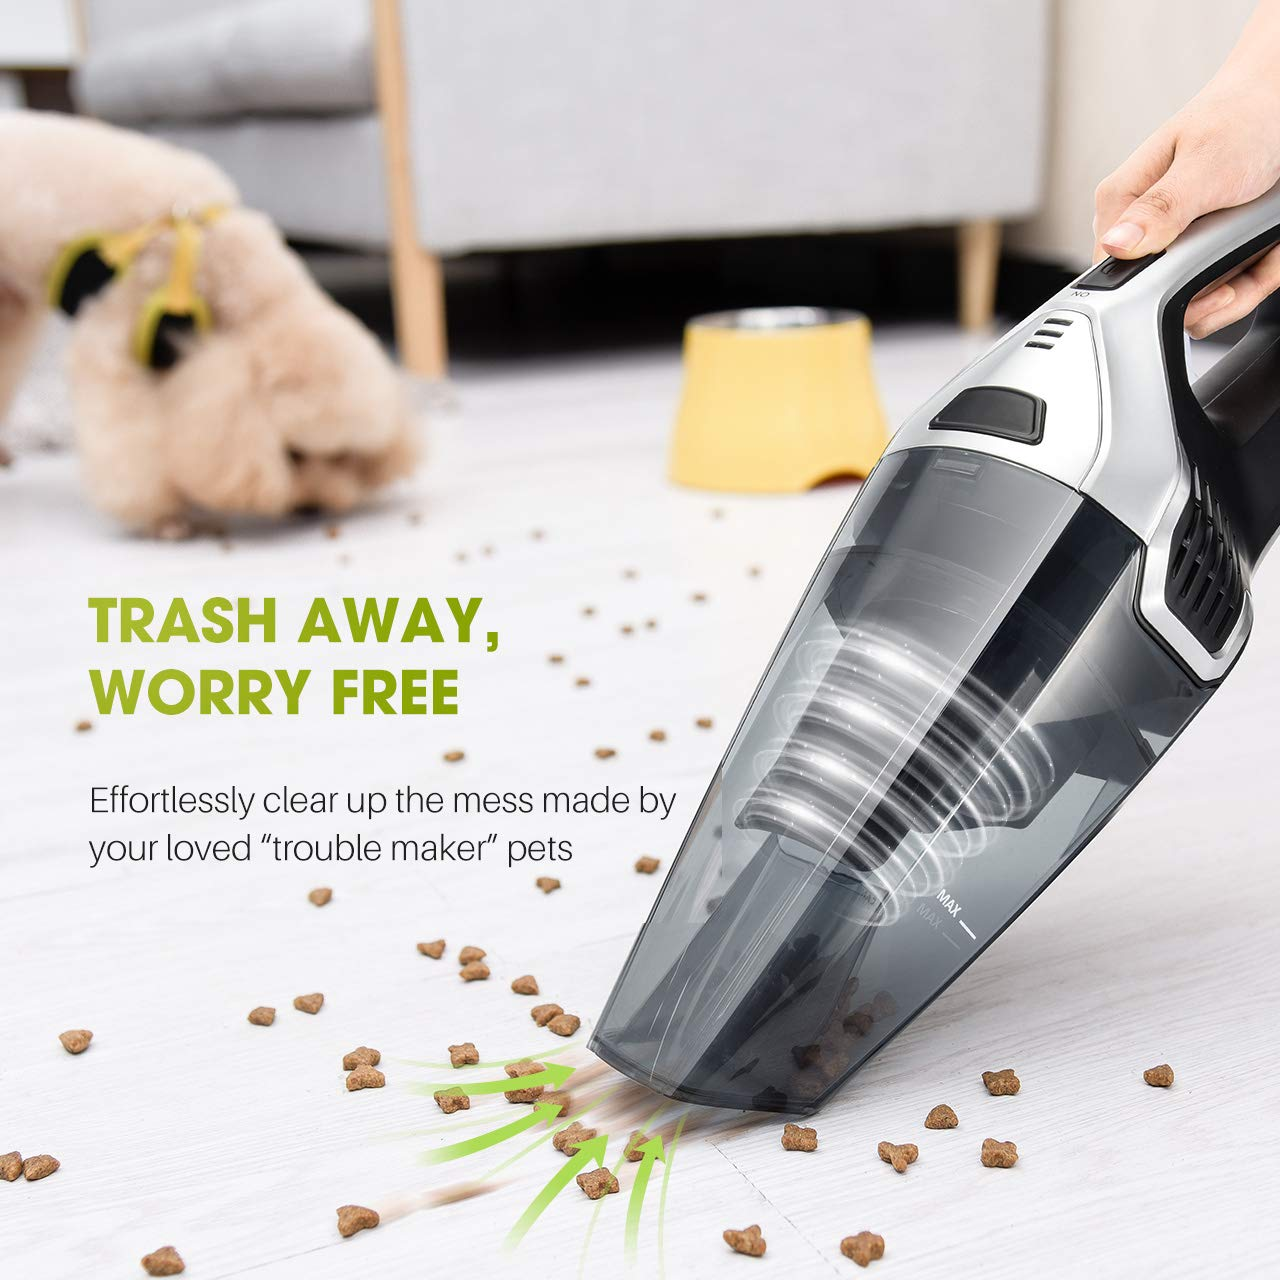 Wet Dry Vacuum Cleaner for Pet Hair Homasy Upgraded Handheld Vacuum Cleaner Cordless Home and Car Cleaning Powerful Lightweight Cyclonic Suction Cleaner Rechargeable Quick Charge Silver